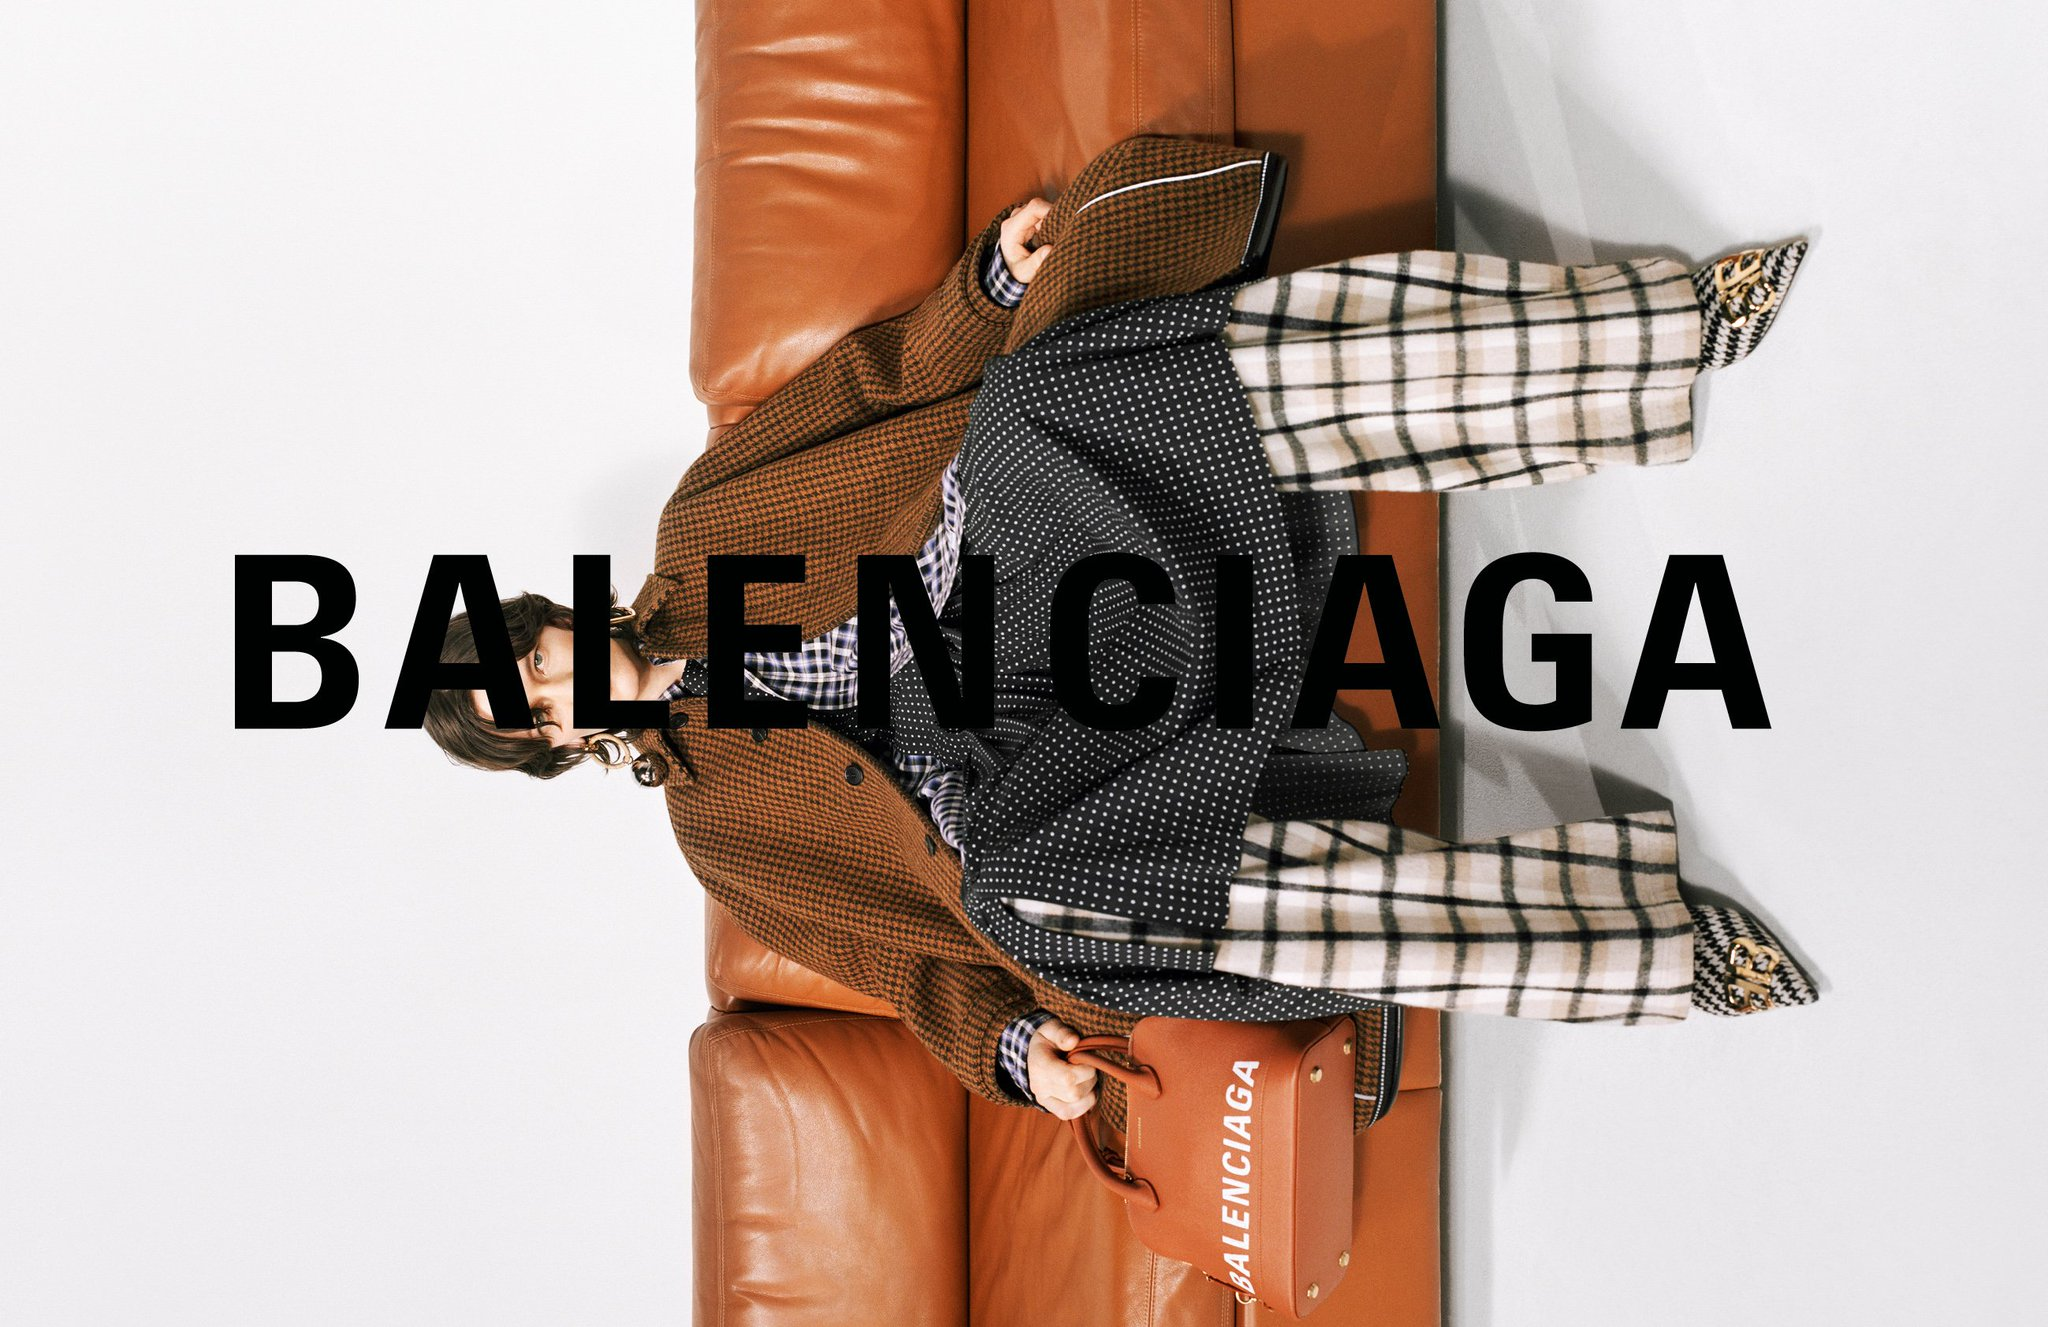 Have you seen @BALENCIAGA's latest Fall '18 campaign? Discover the full collection here: https://t.co/mQLJXpFHj4 https://t.co/U3FxMThNp9